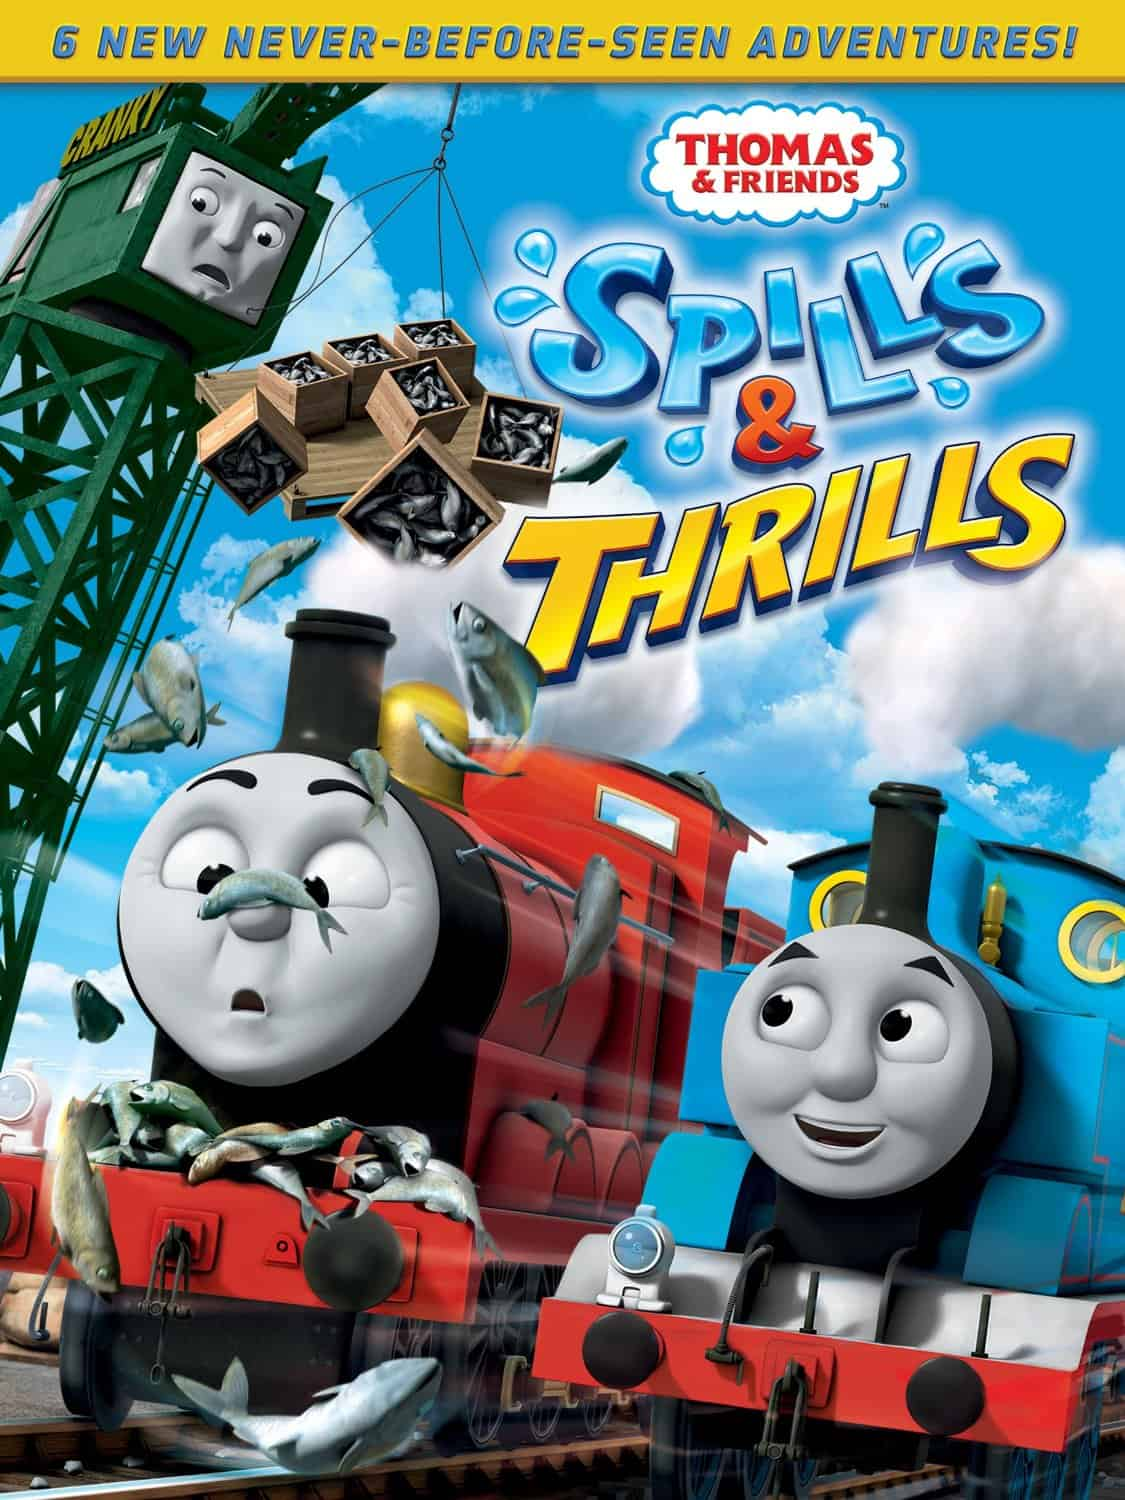 download thomas amp friends spills and thrills free full